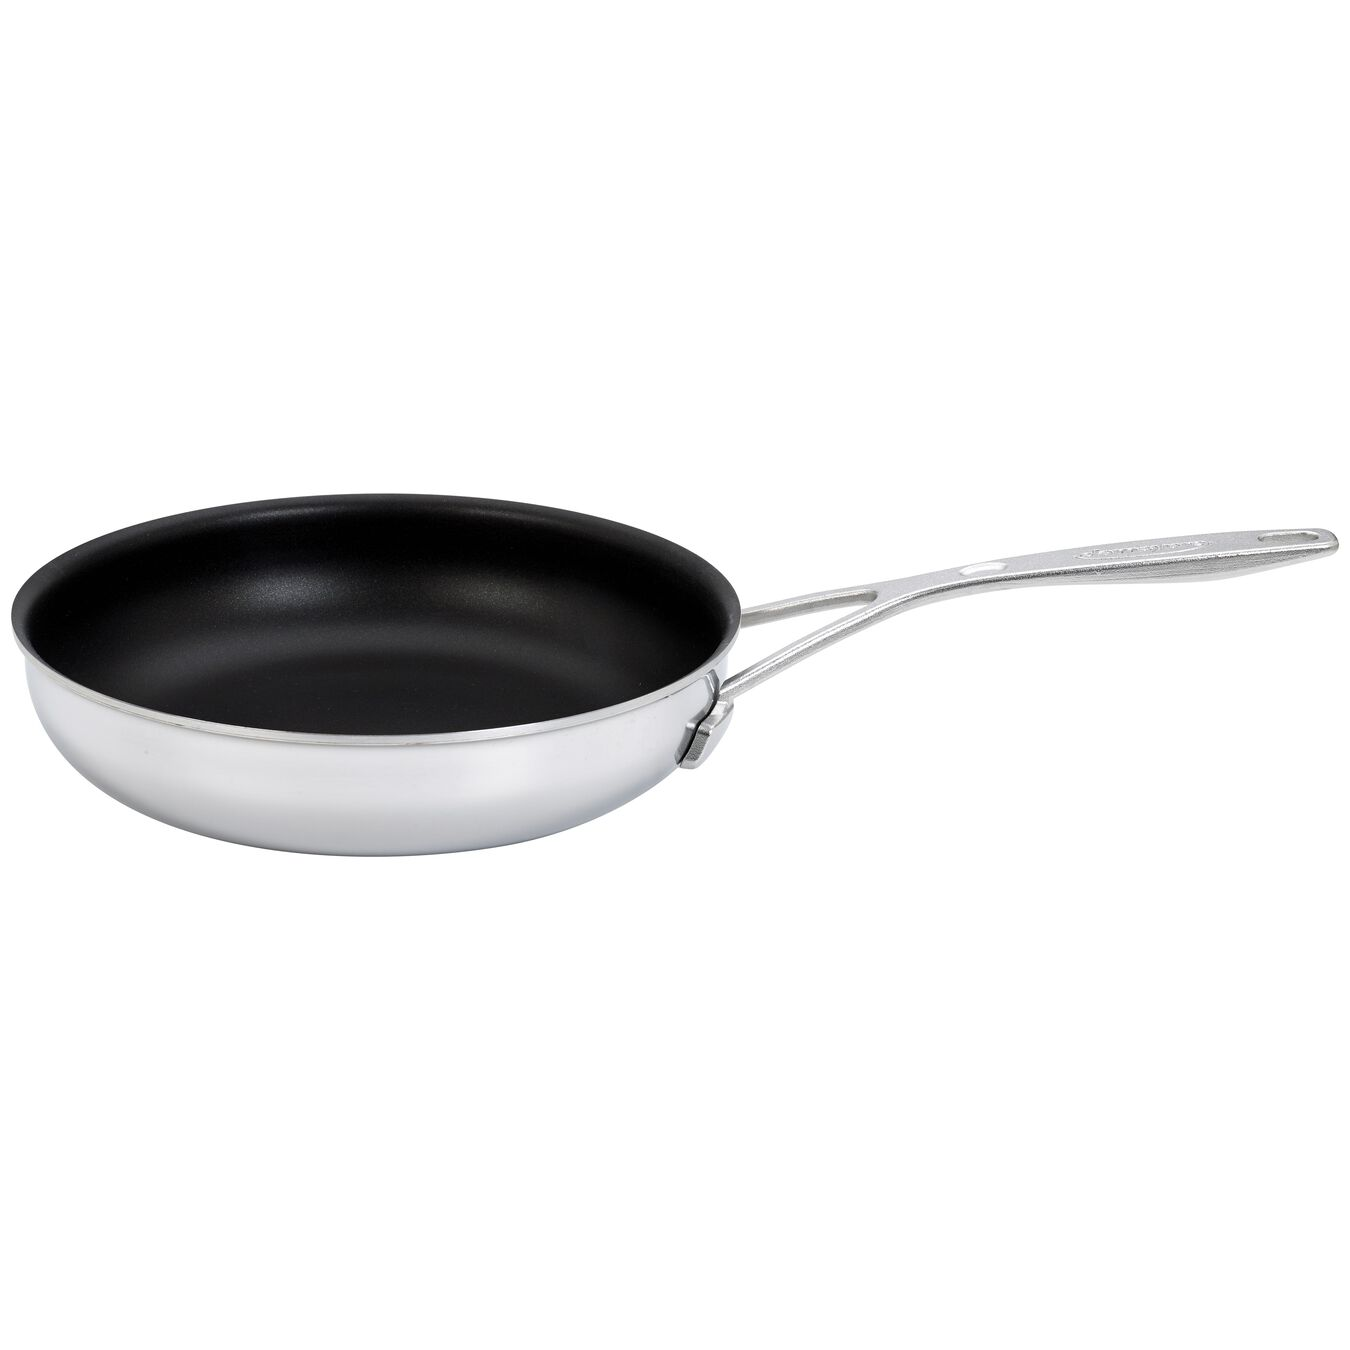 11-inch, 18/10 Stainless Steel, Non-stick, PTFE, Frying pan,,large 1